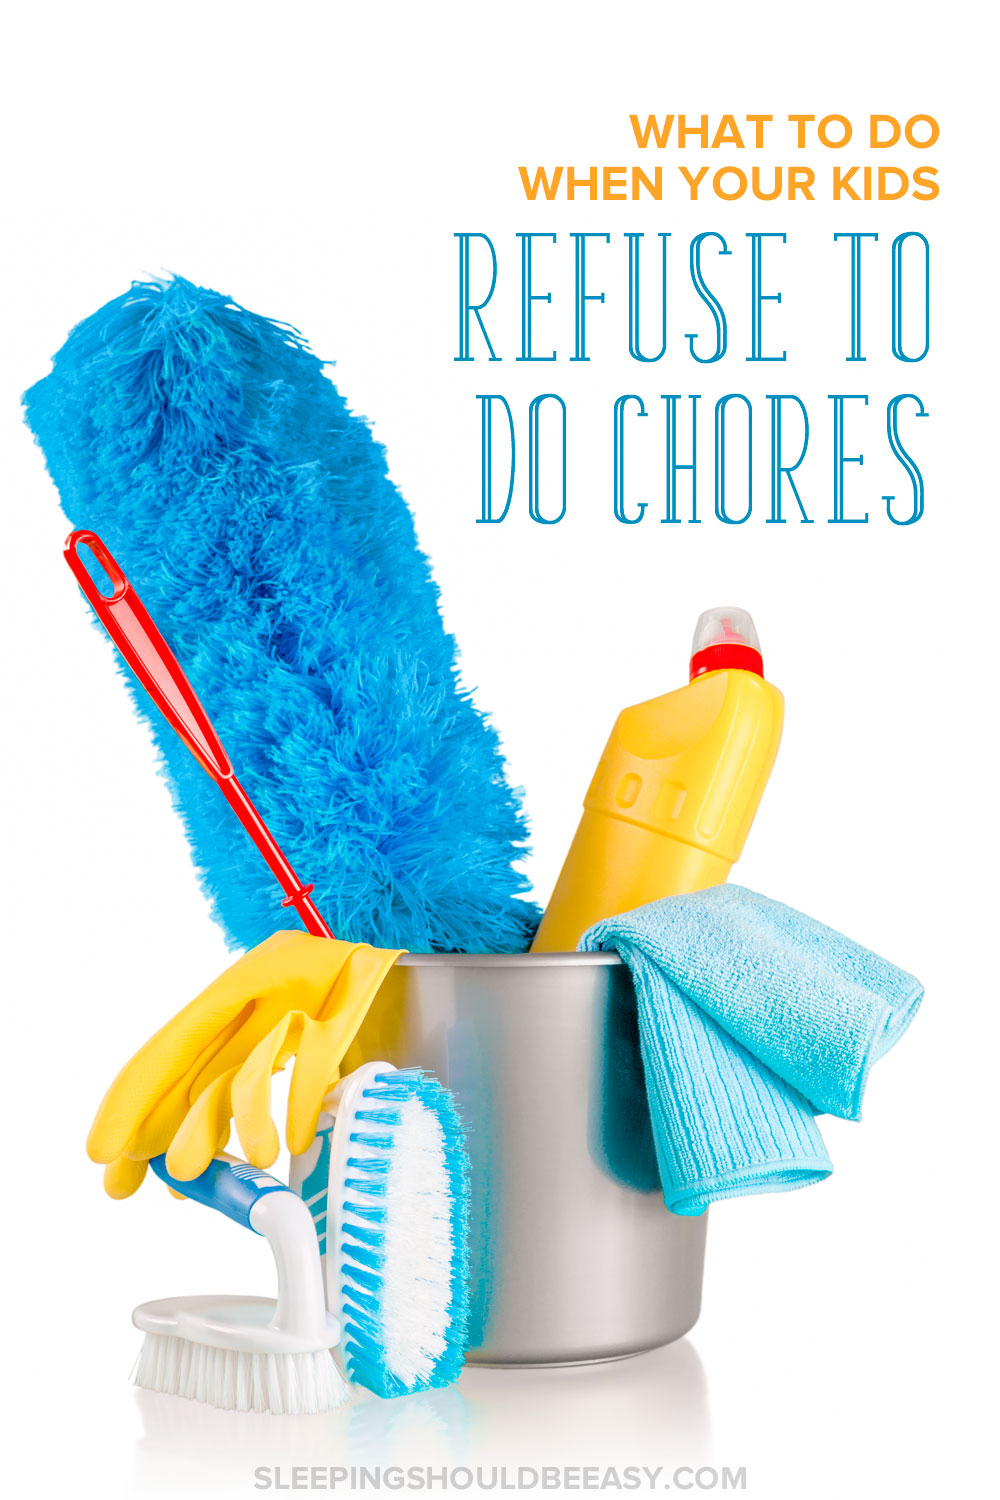 Struggling with getting your children to do chores without nagging or complaining? Learn what to do when your kids refuse to do chores.